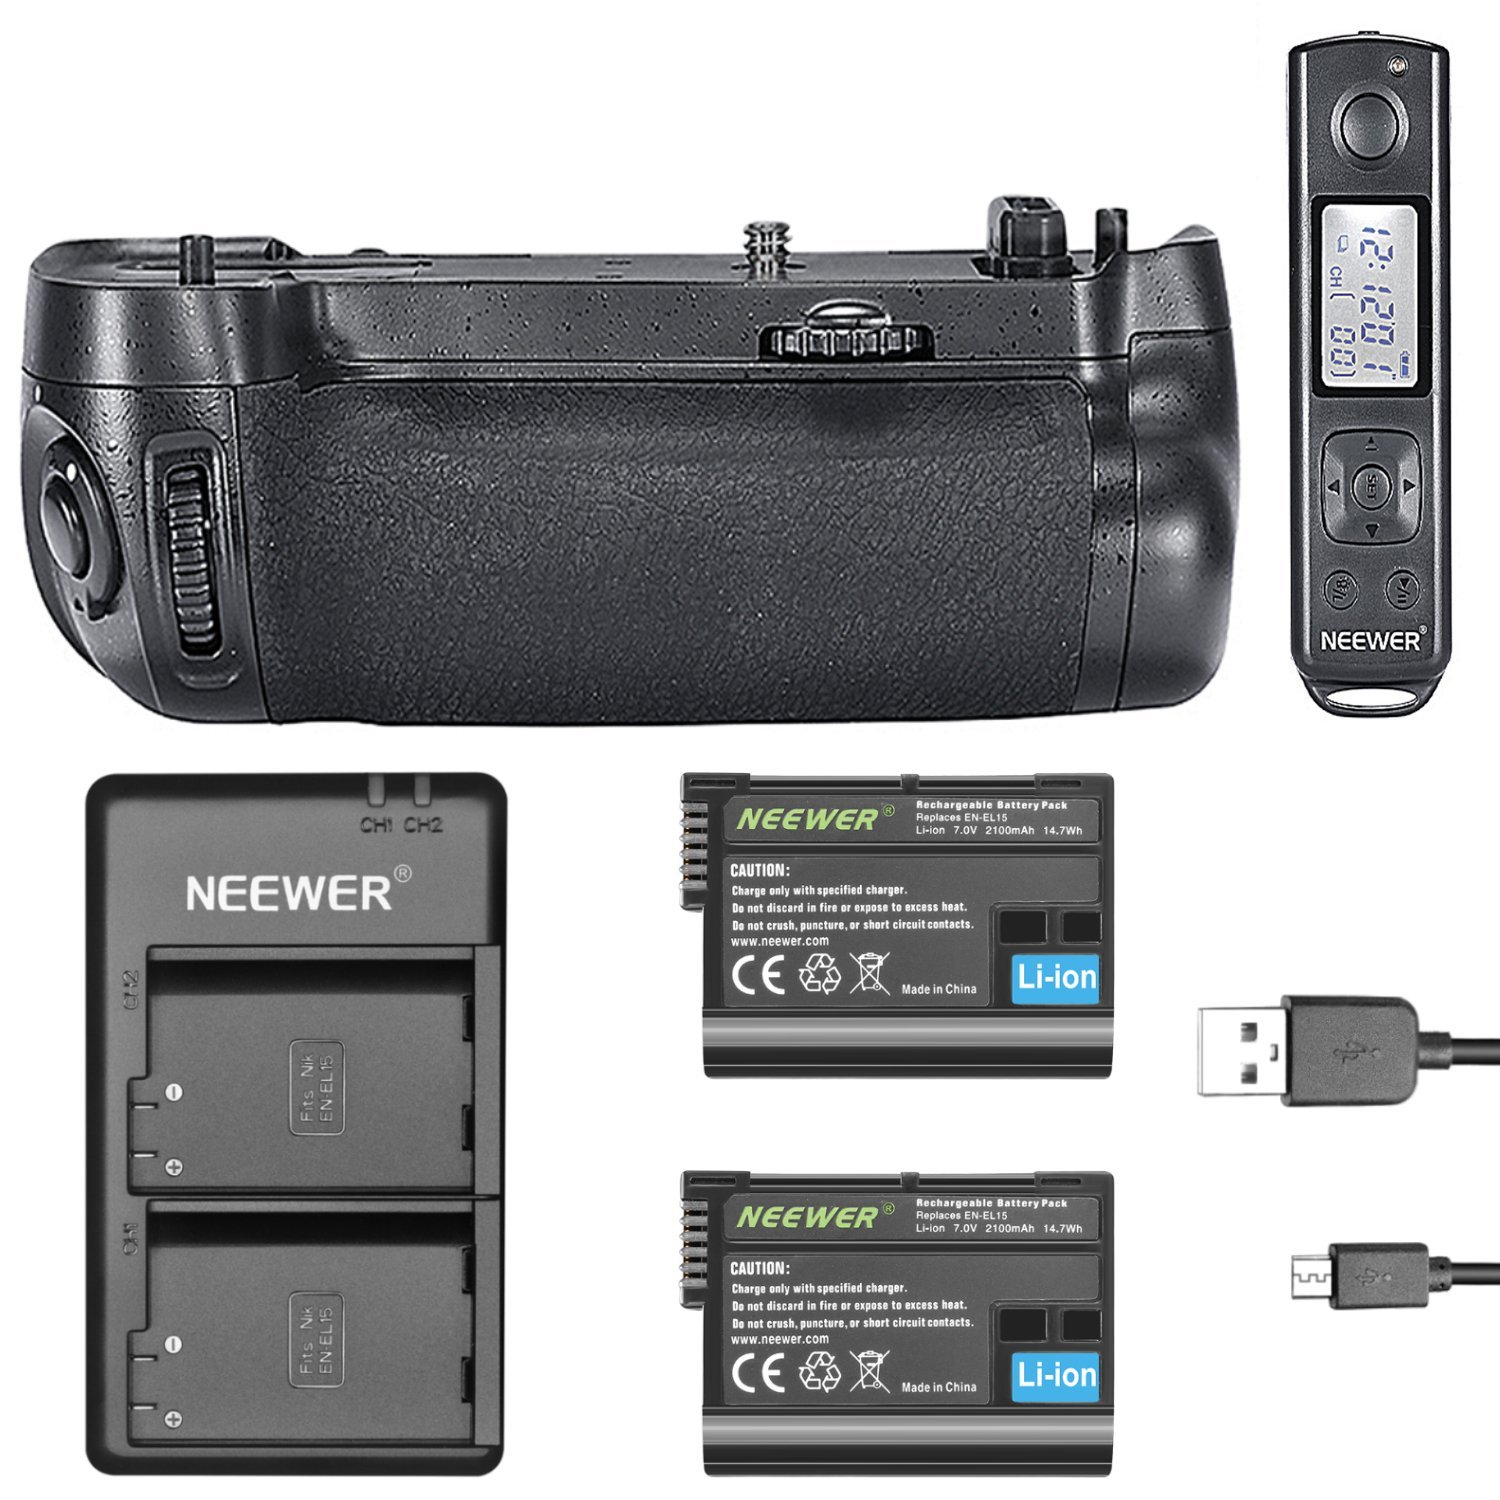 Neewer Battery Grip MB-D16 Replacement with Wireless LCD Display Remote Control, 2 Pieces 2100mAh EN-EL15 Replacement Li-ion Battery and USB Input Dual-Channel Battery Charger for Nikon D750 Camera